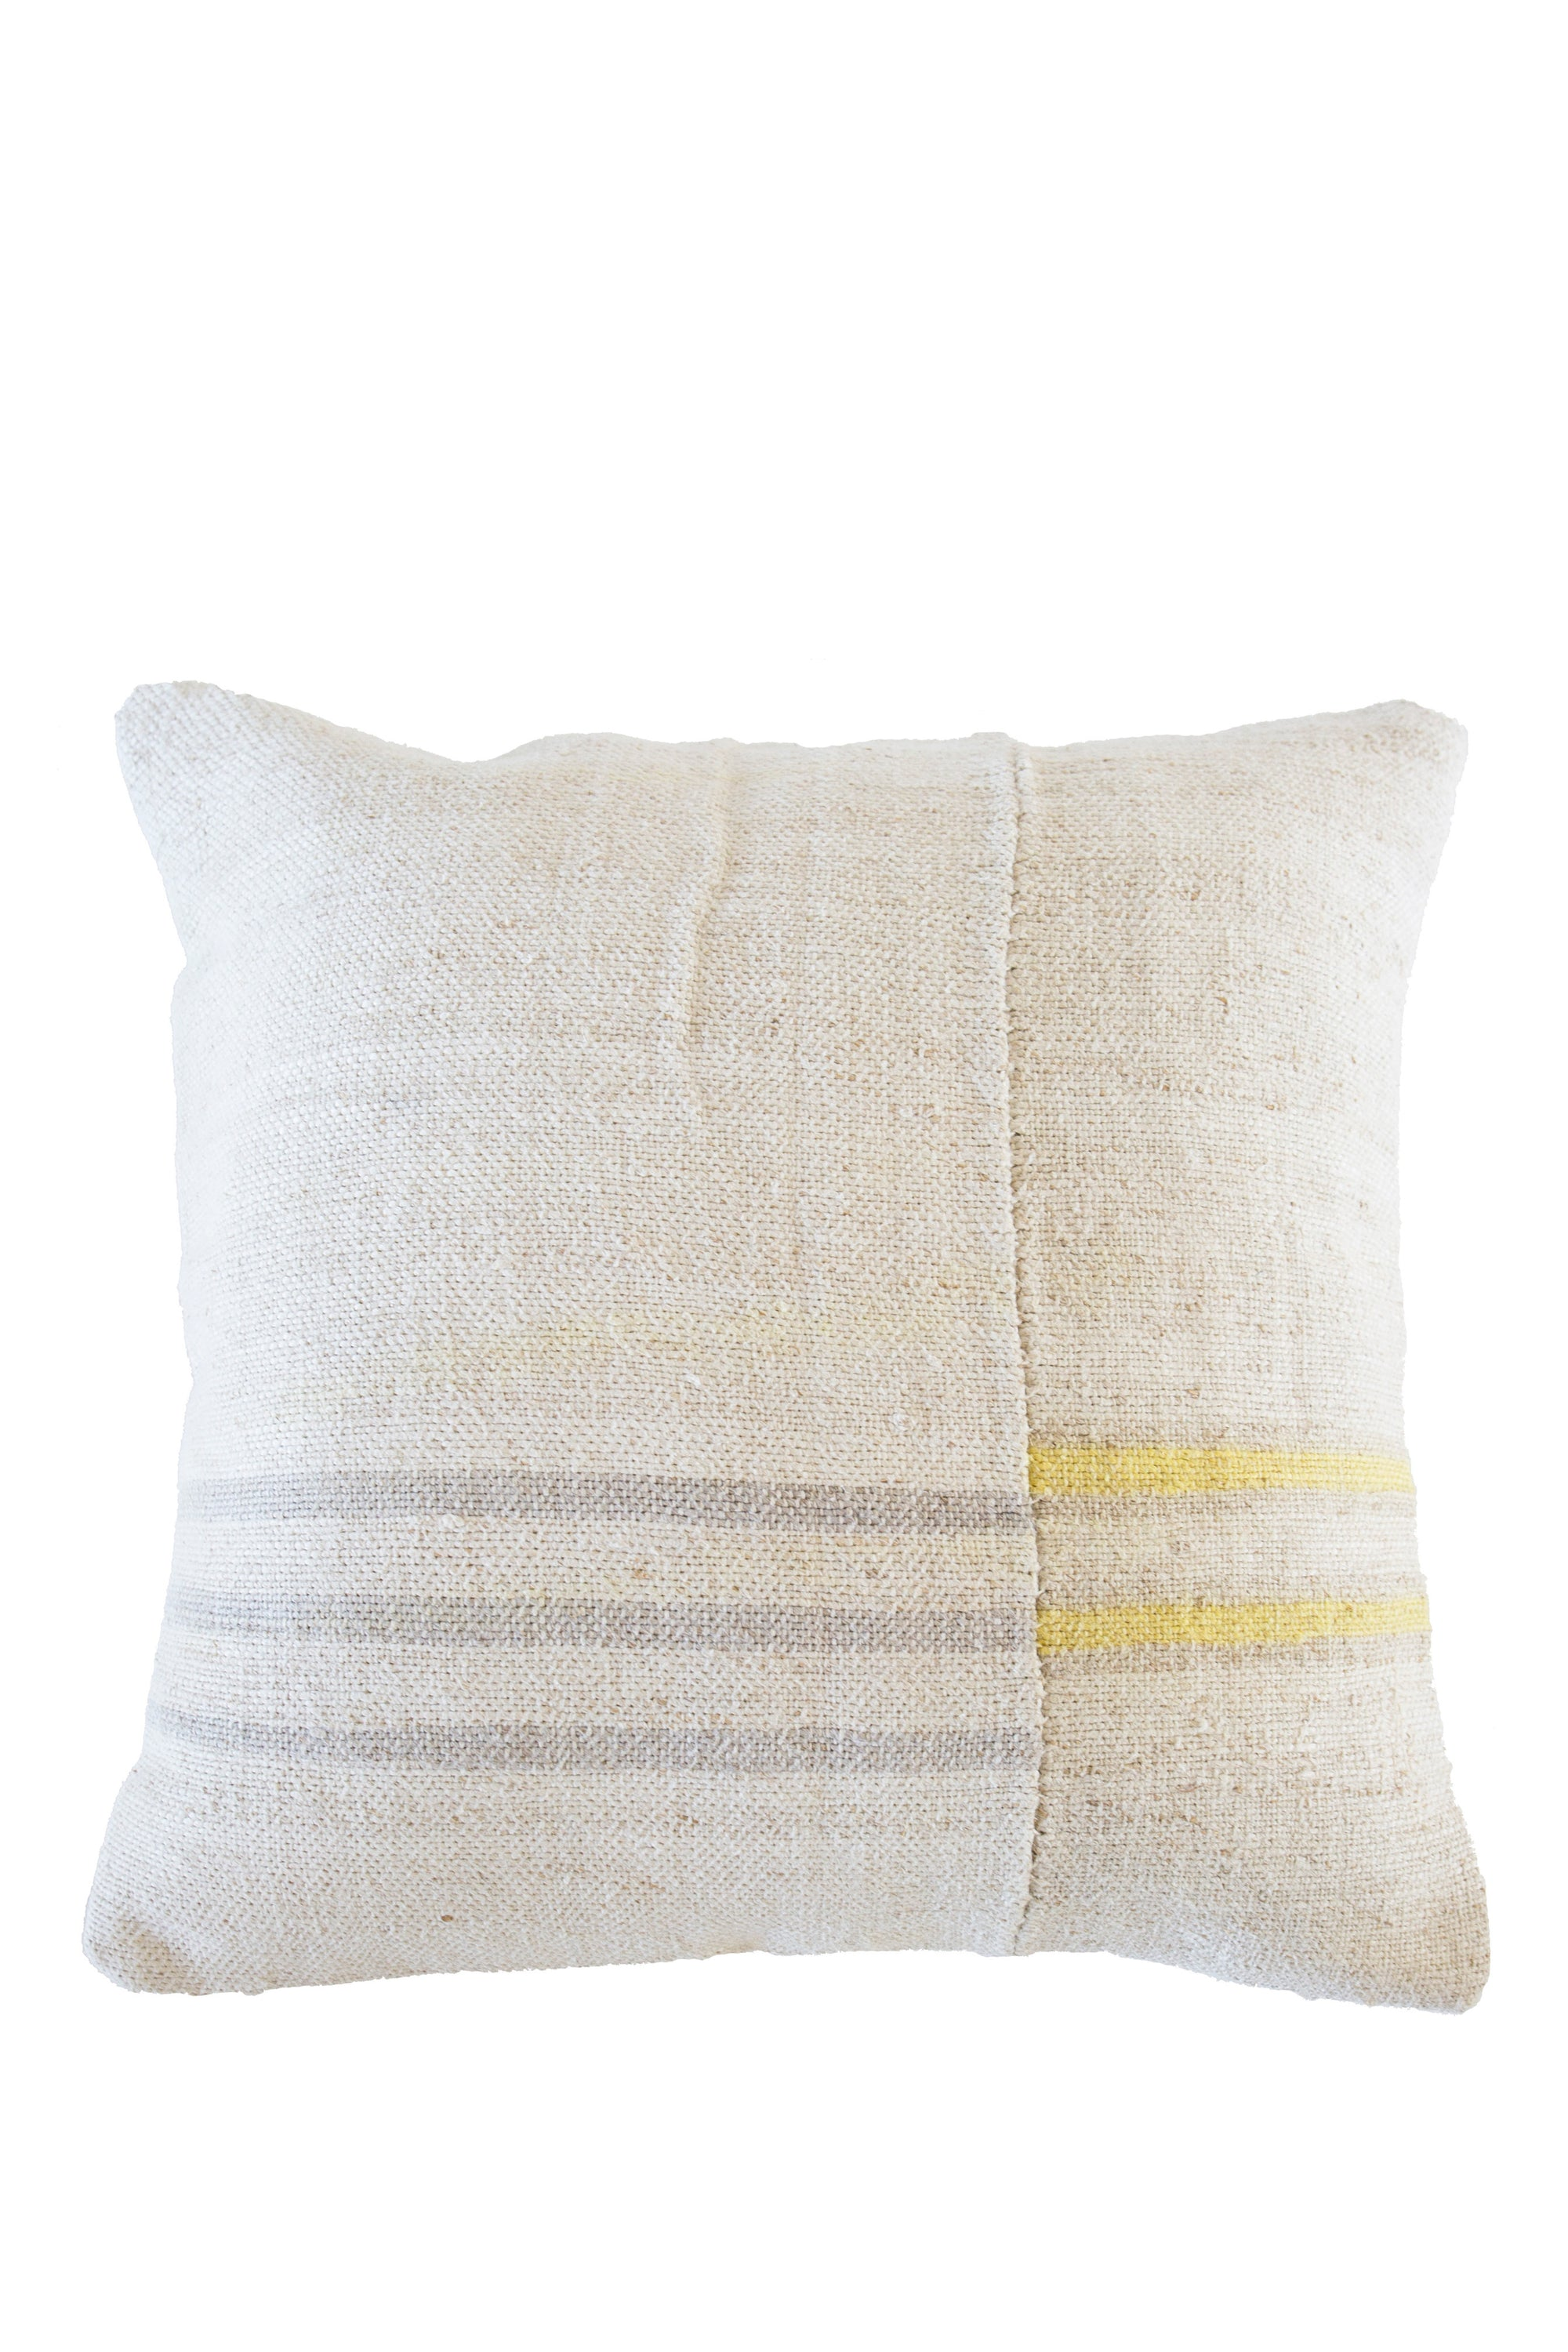 Everlong Turkish Kilim Cushion